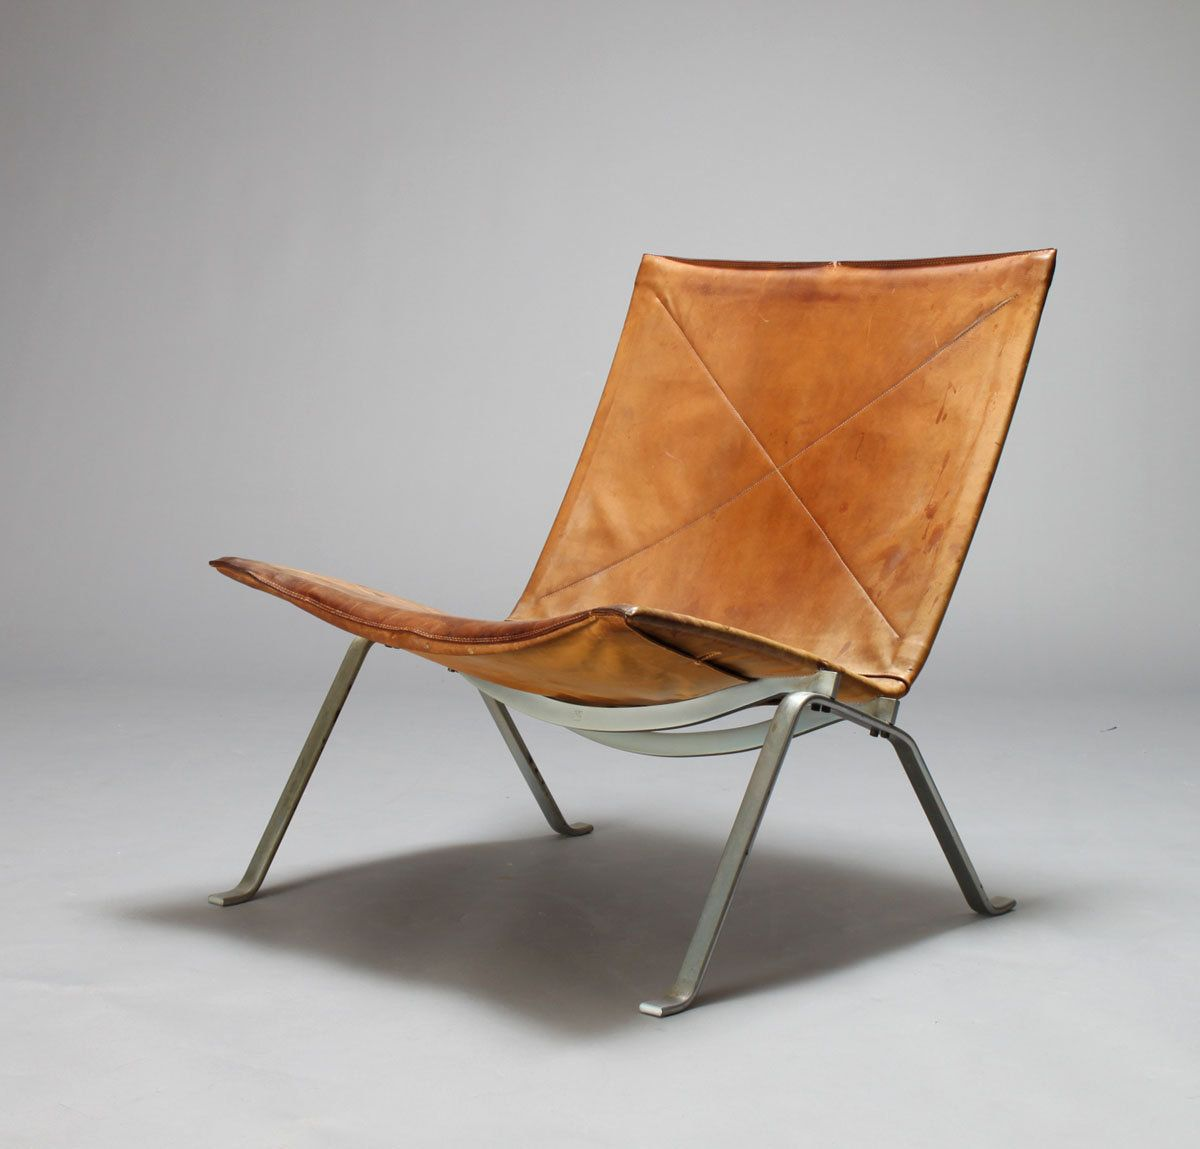 Poul kj rholm january 8 1929 april 18 1980 deens for 1980s chair design